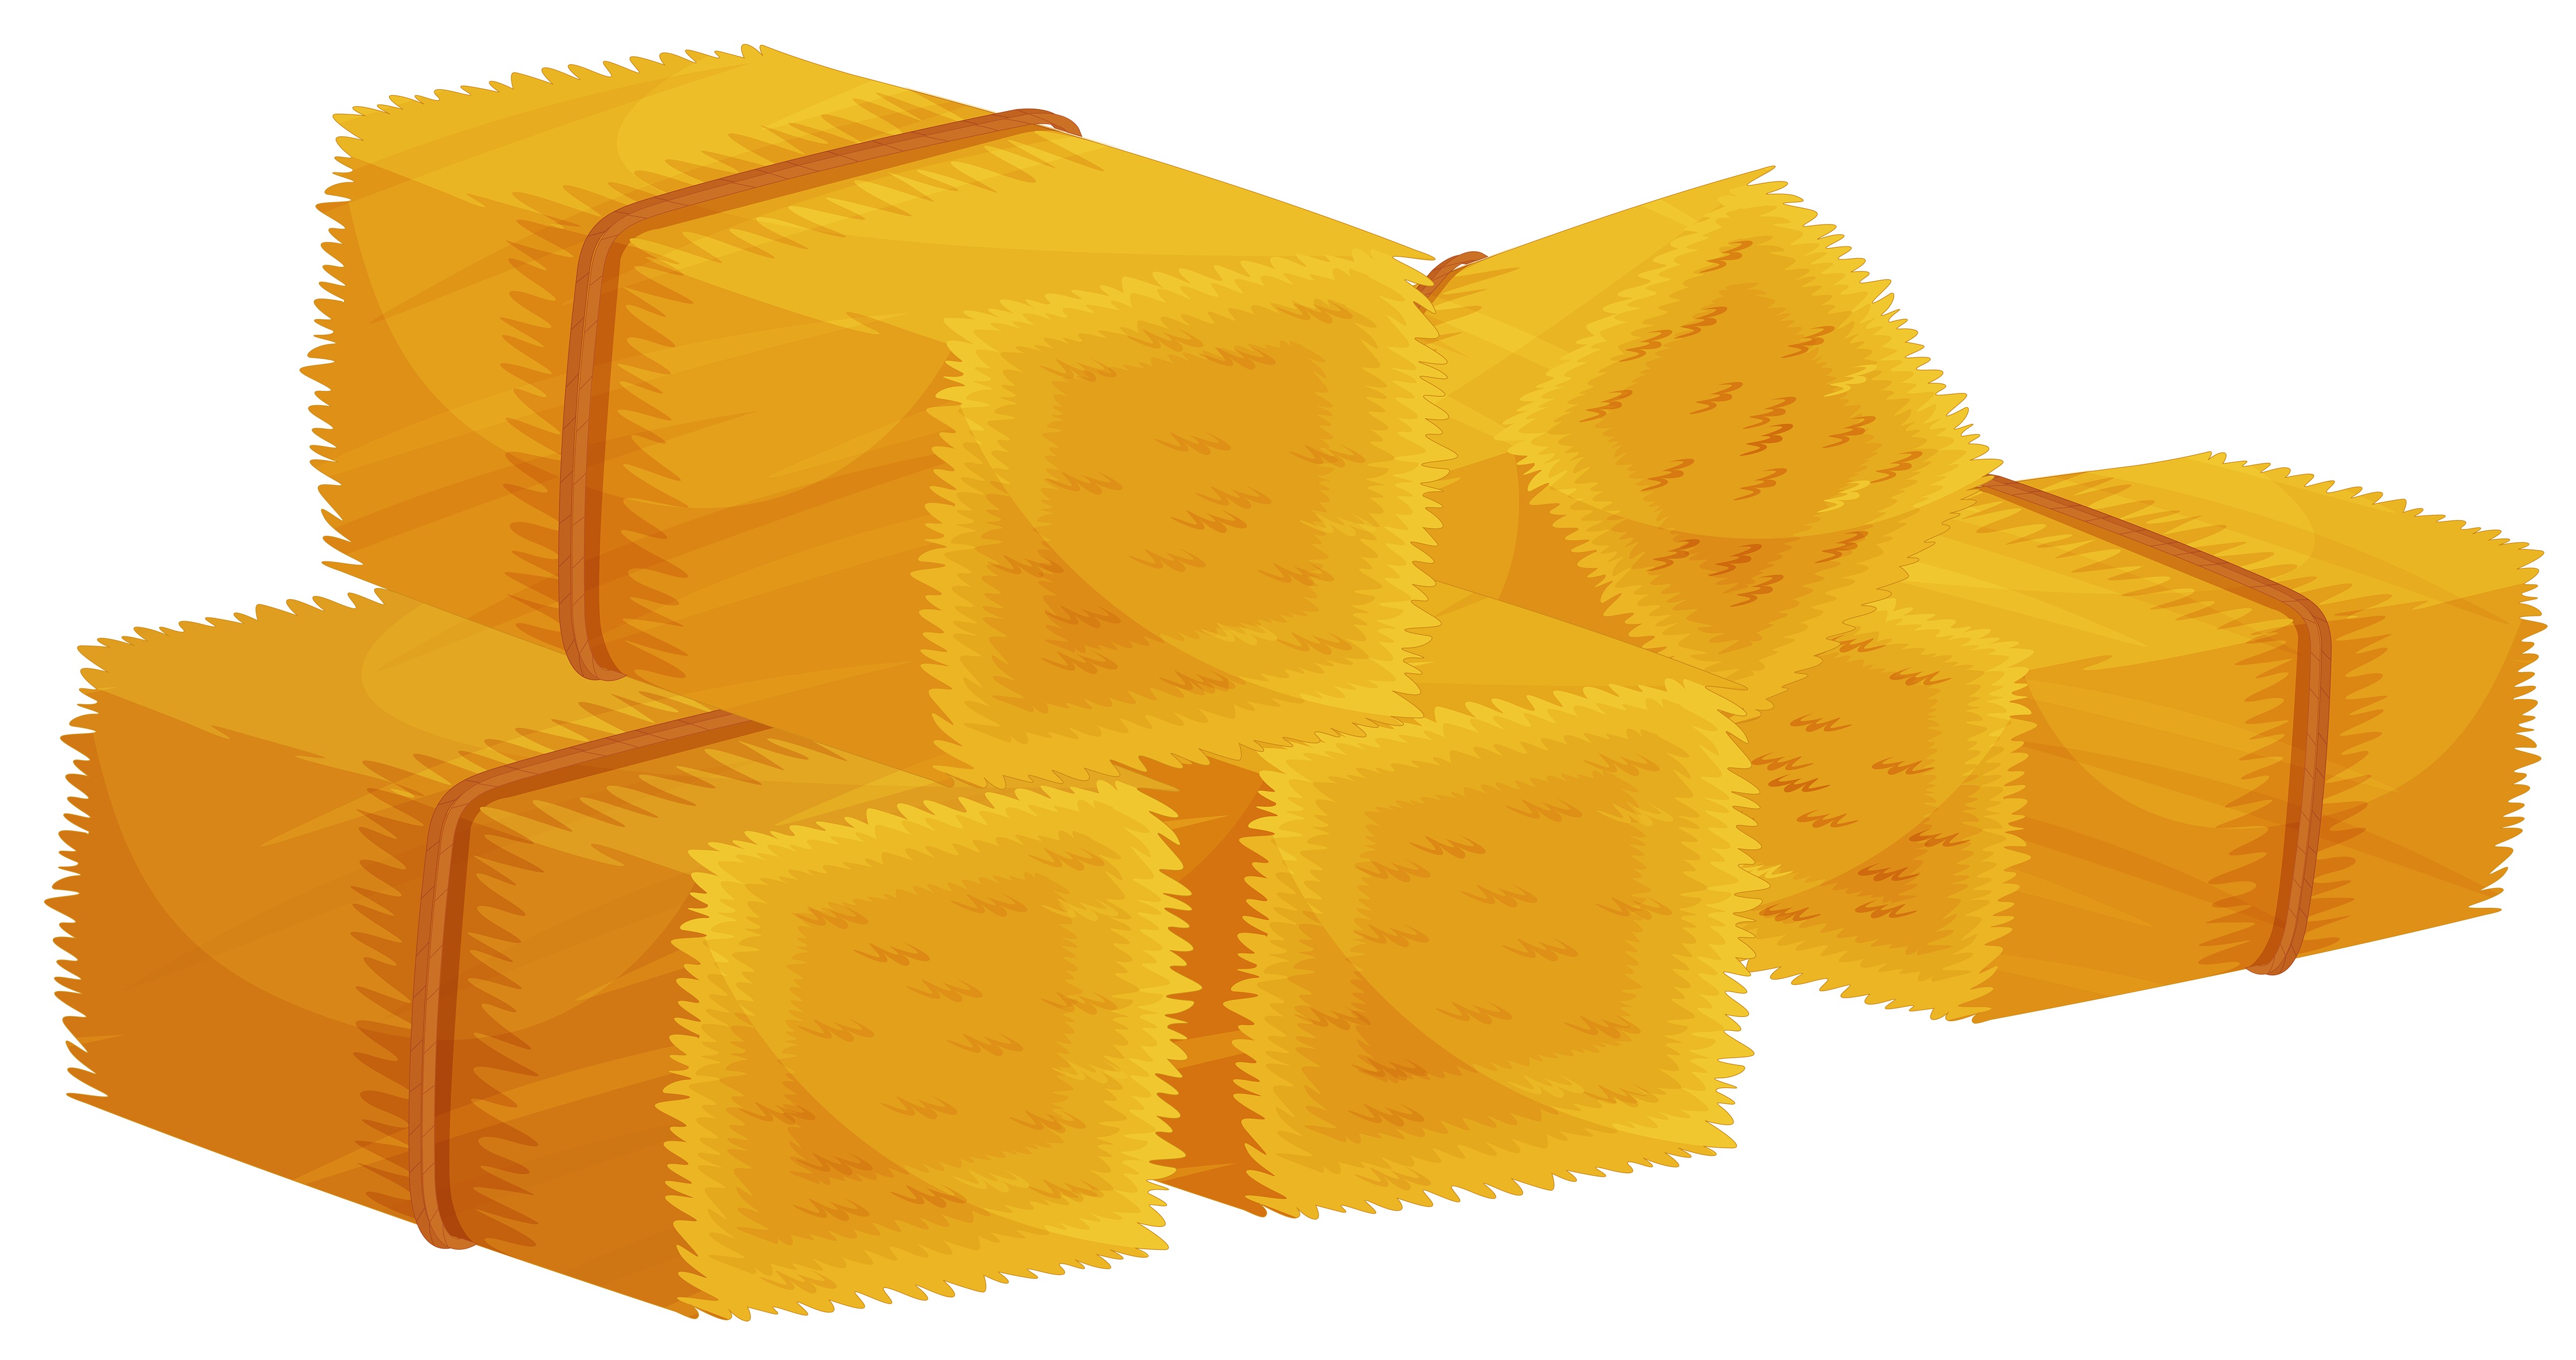 vector freeuse download Straw clipart. Hay bales png picture